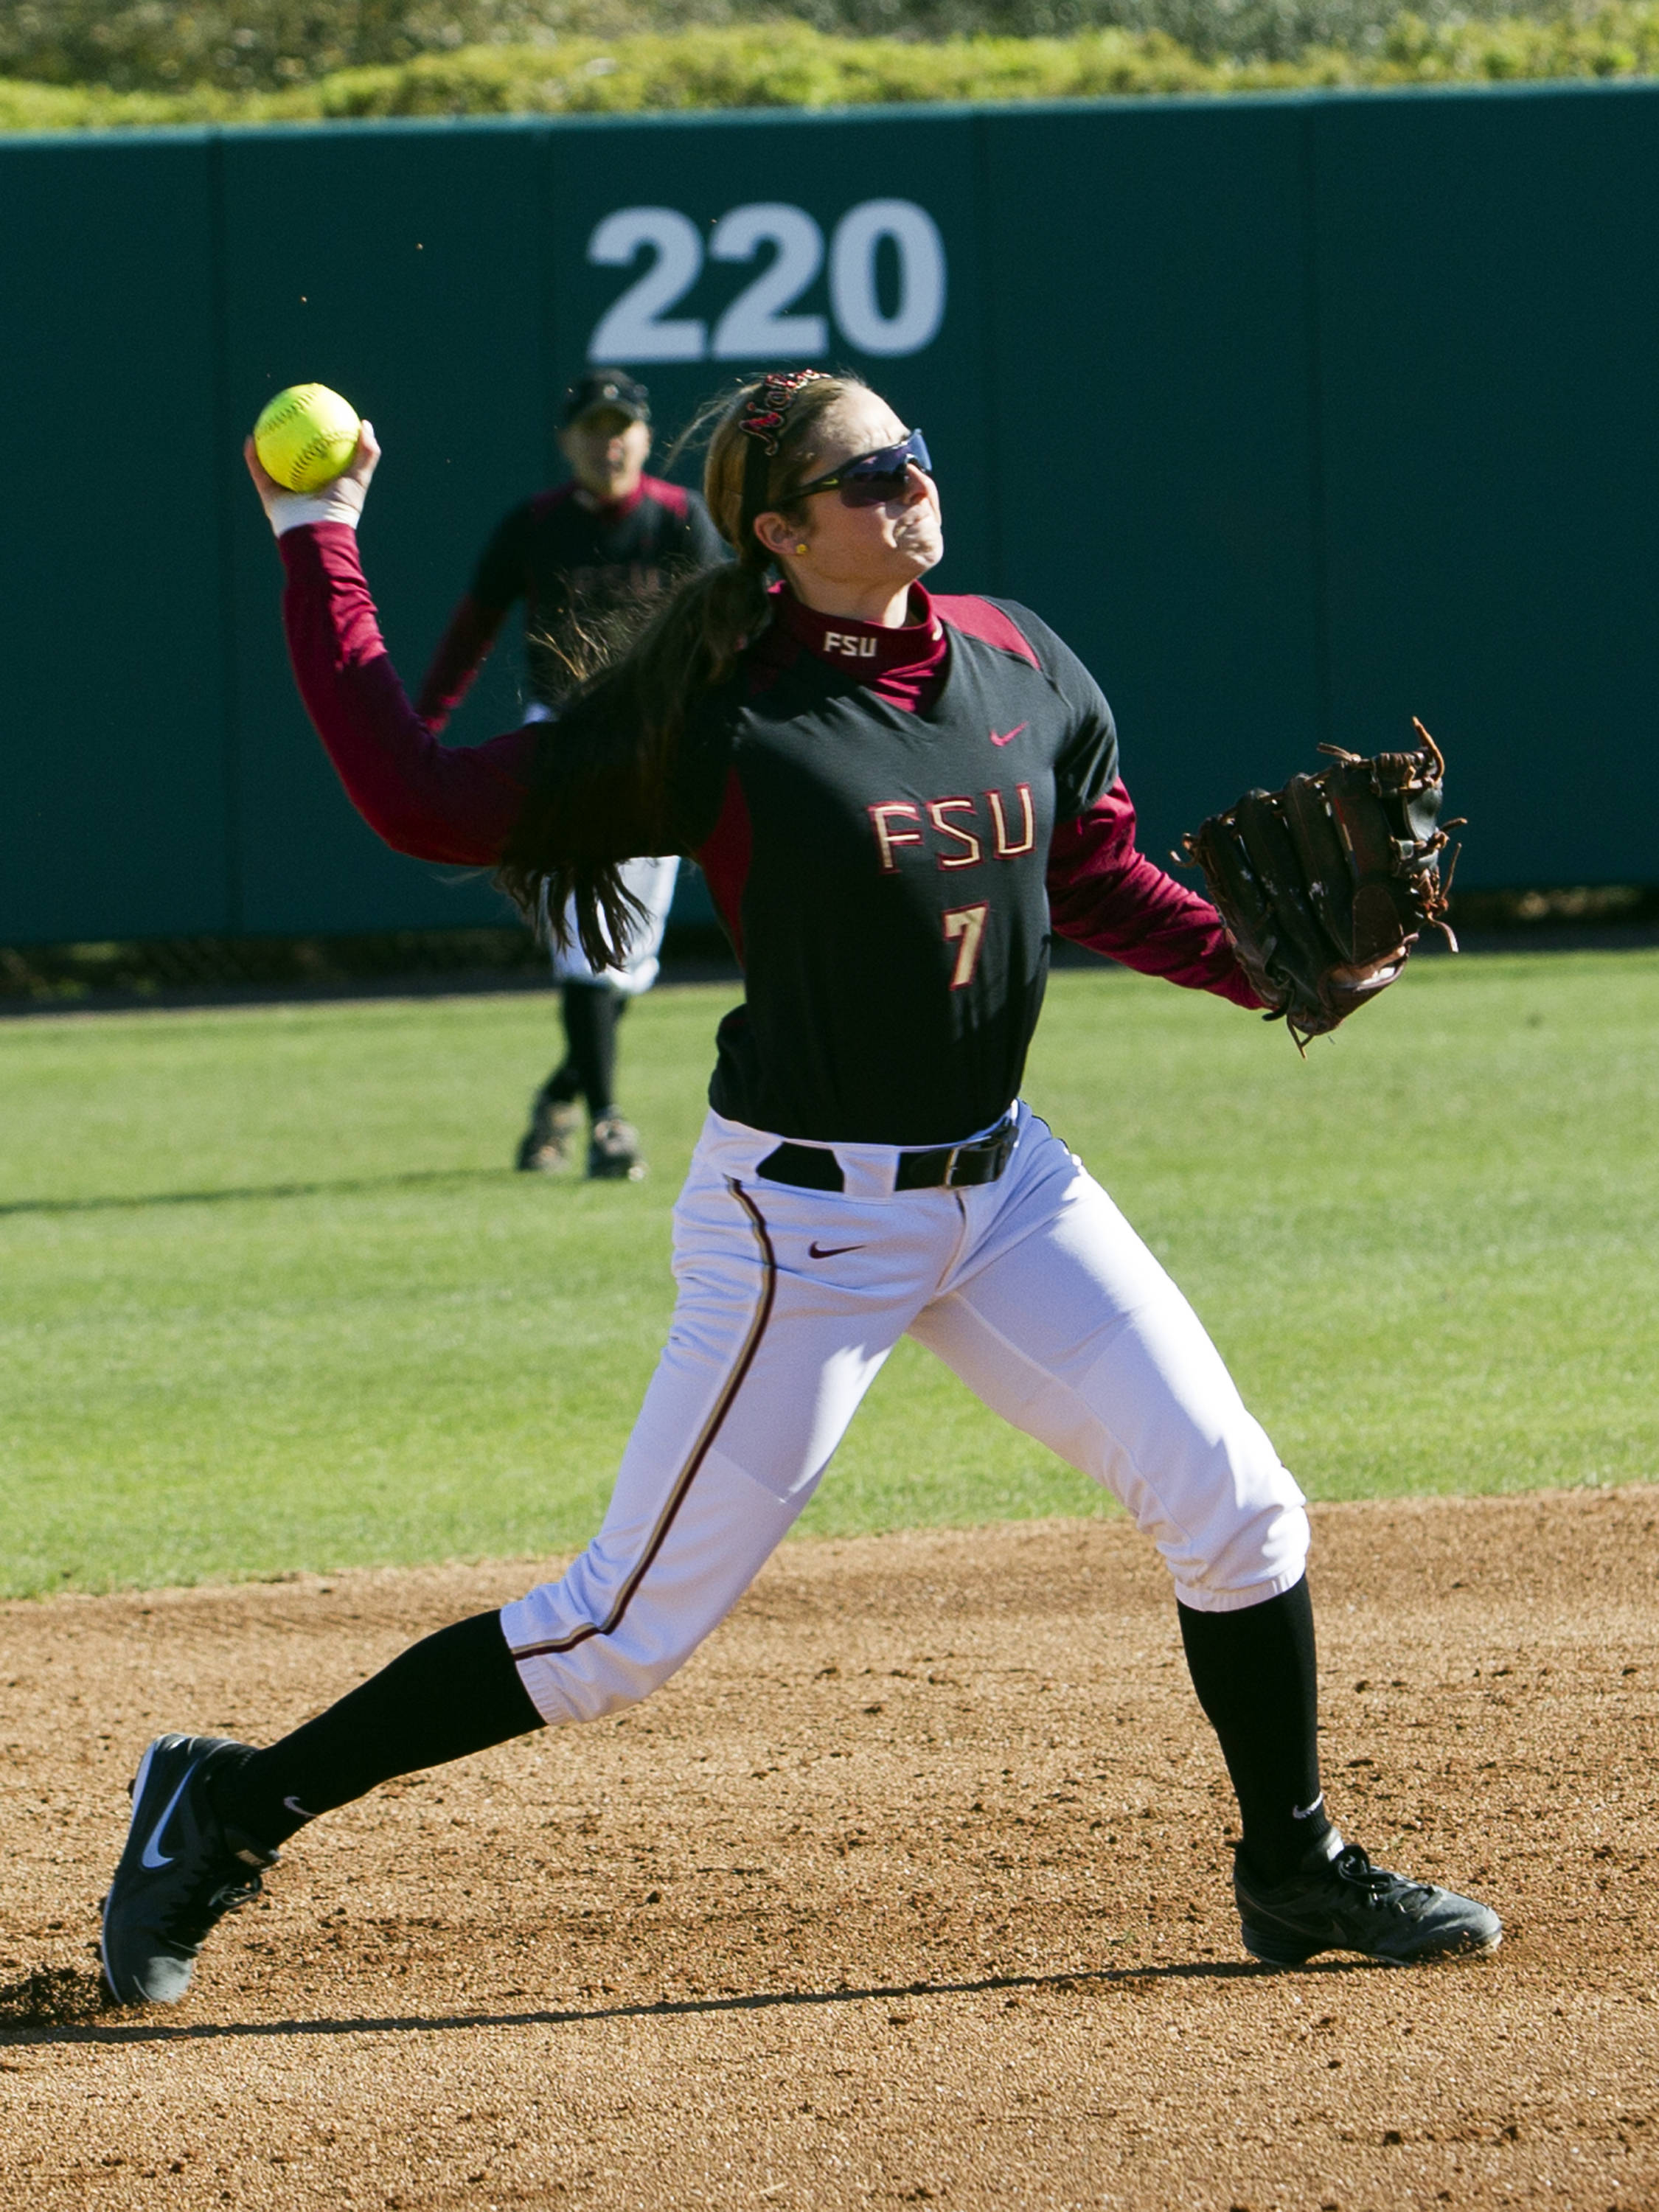 Maddie O'Brien (7), FSU vs Tulsa, 02/17/13. (Photo by Steve Musco)